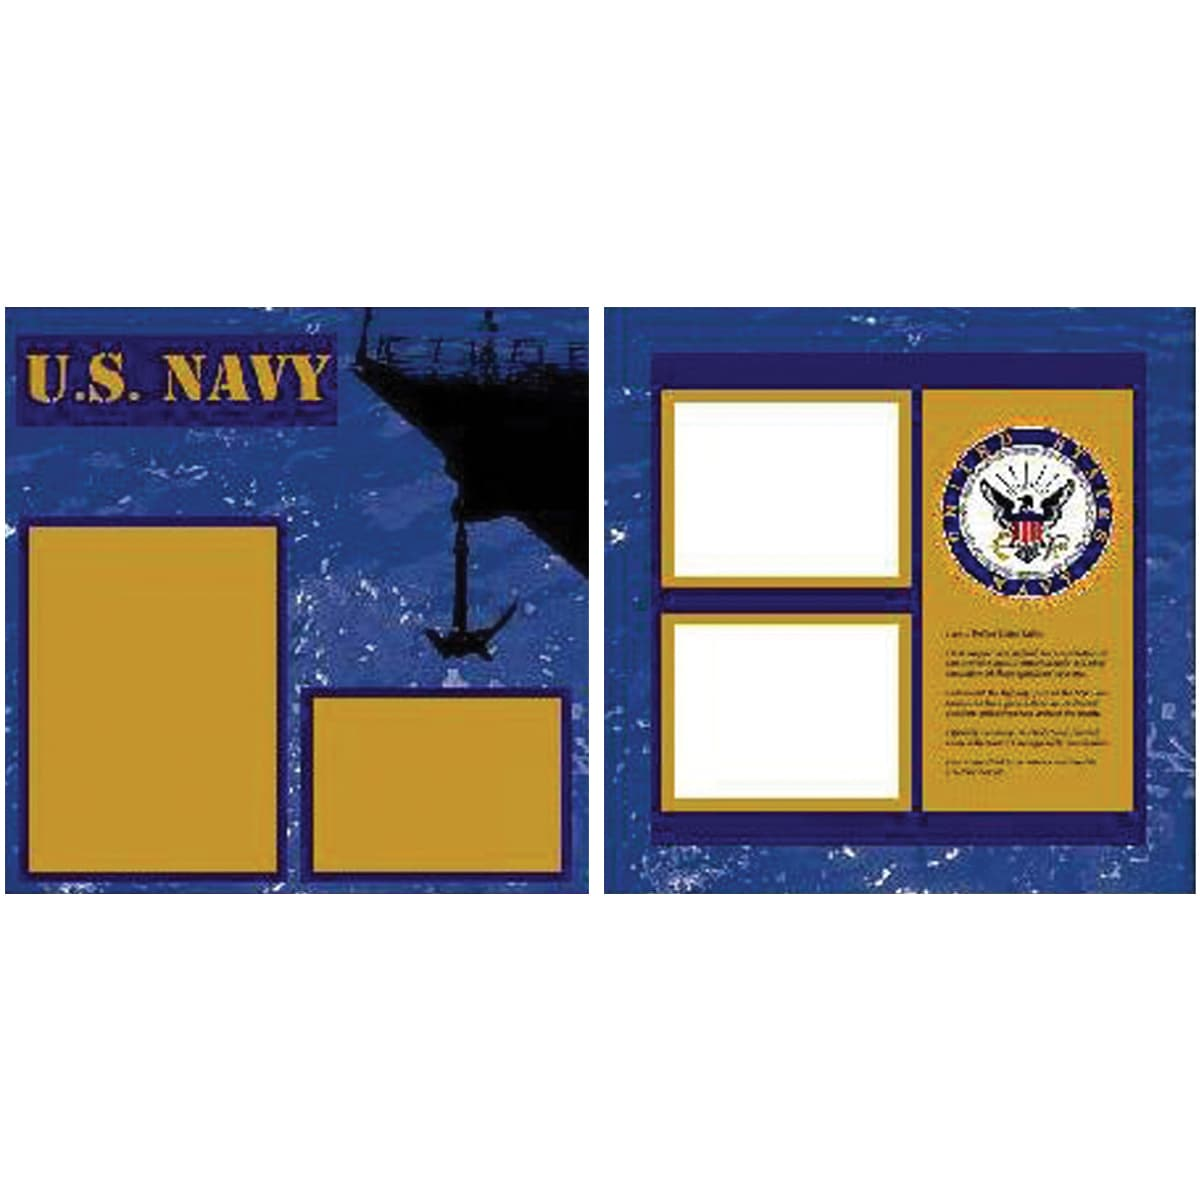 U.S. Navy 2 Page Layout 12X12in